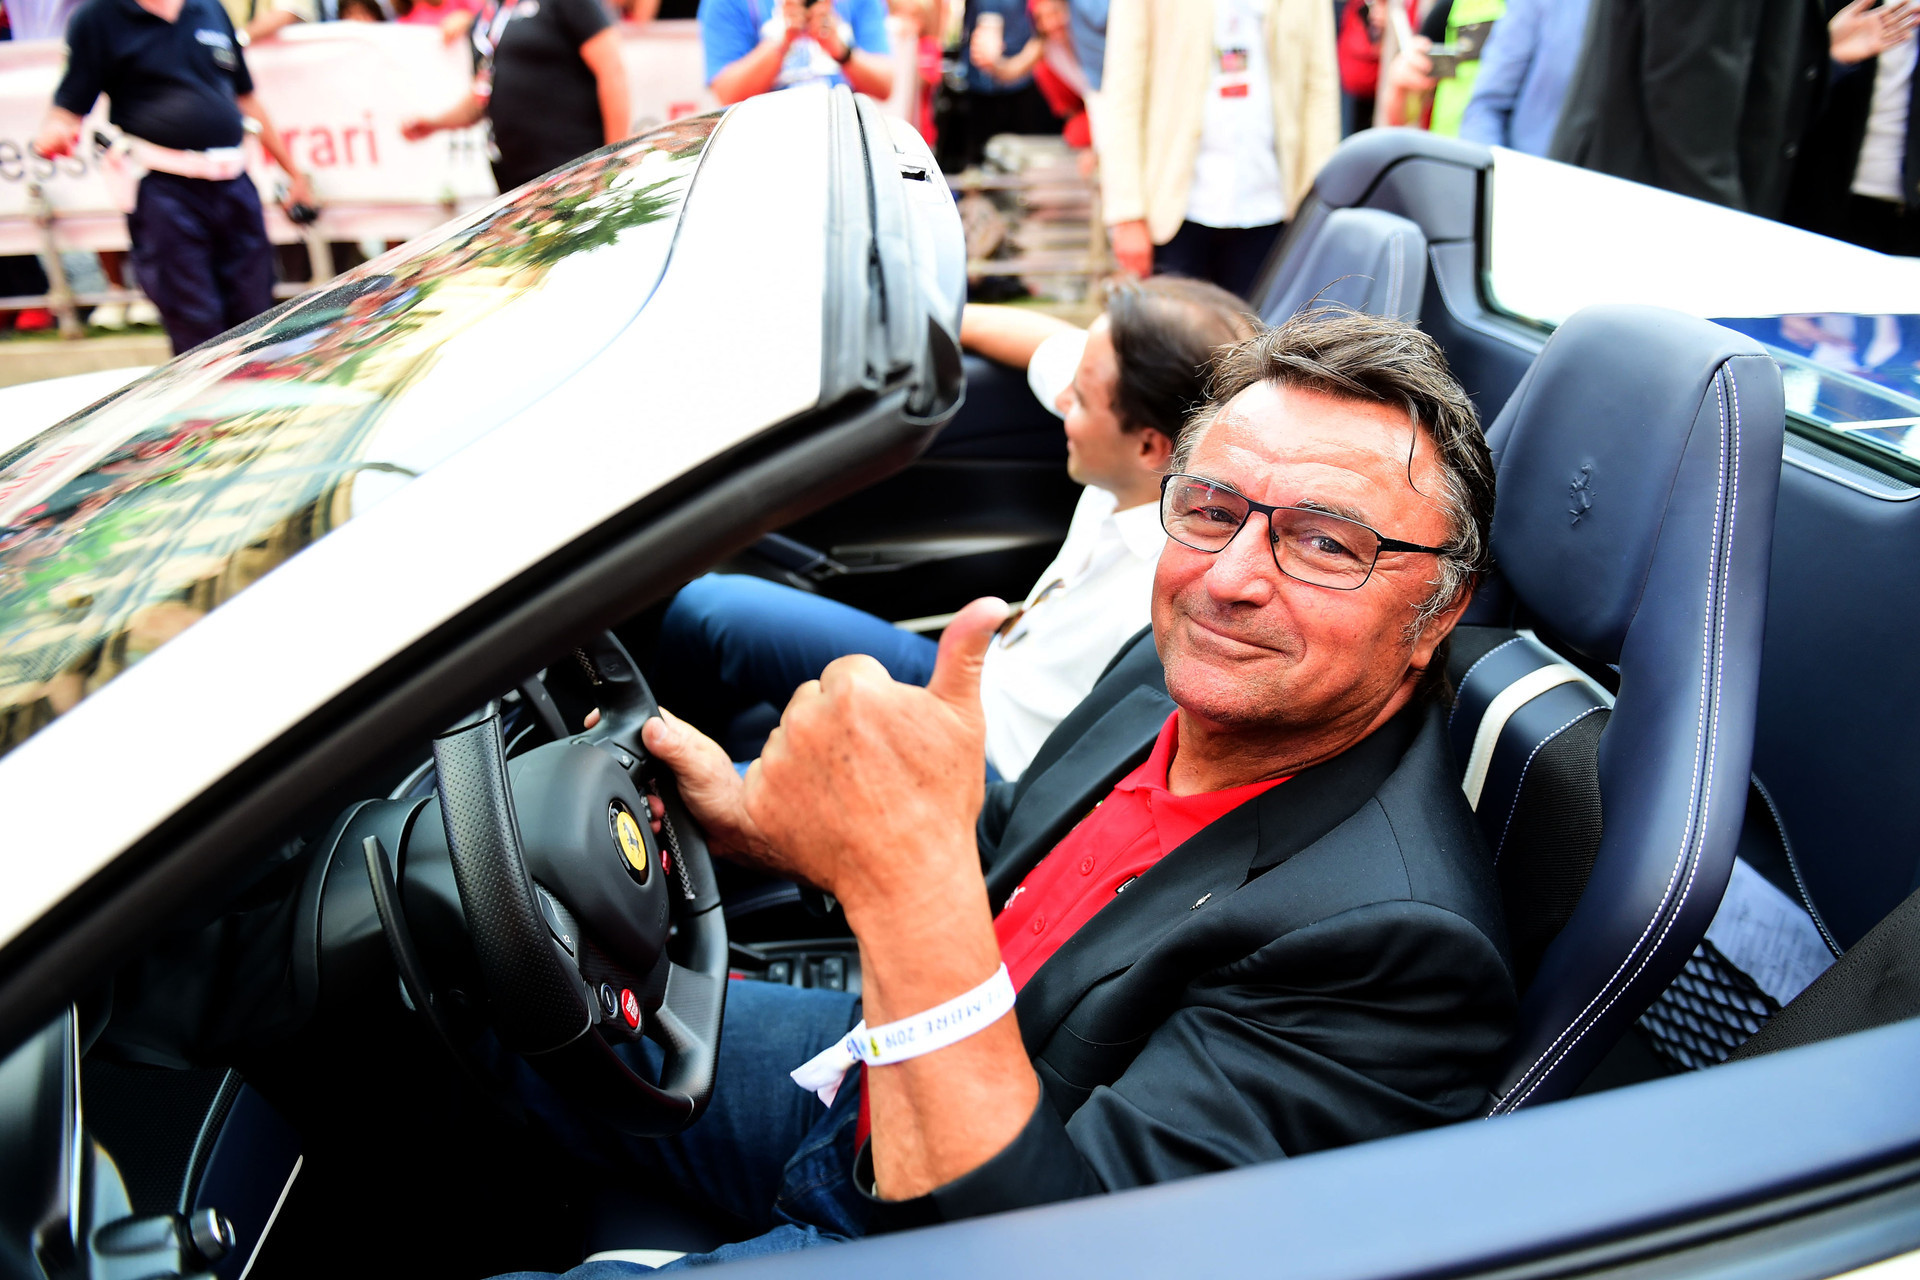 2019 Ferrari 90 Years celebration at Milan | 4 Sept 2019 website 10.jpg